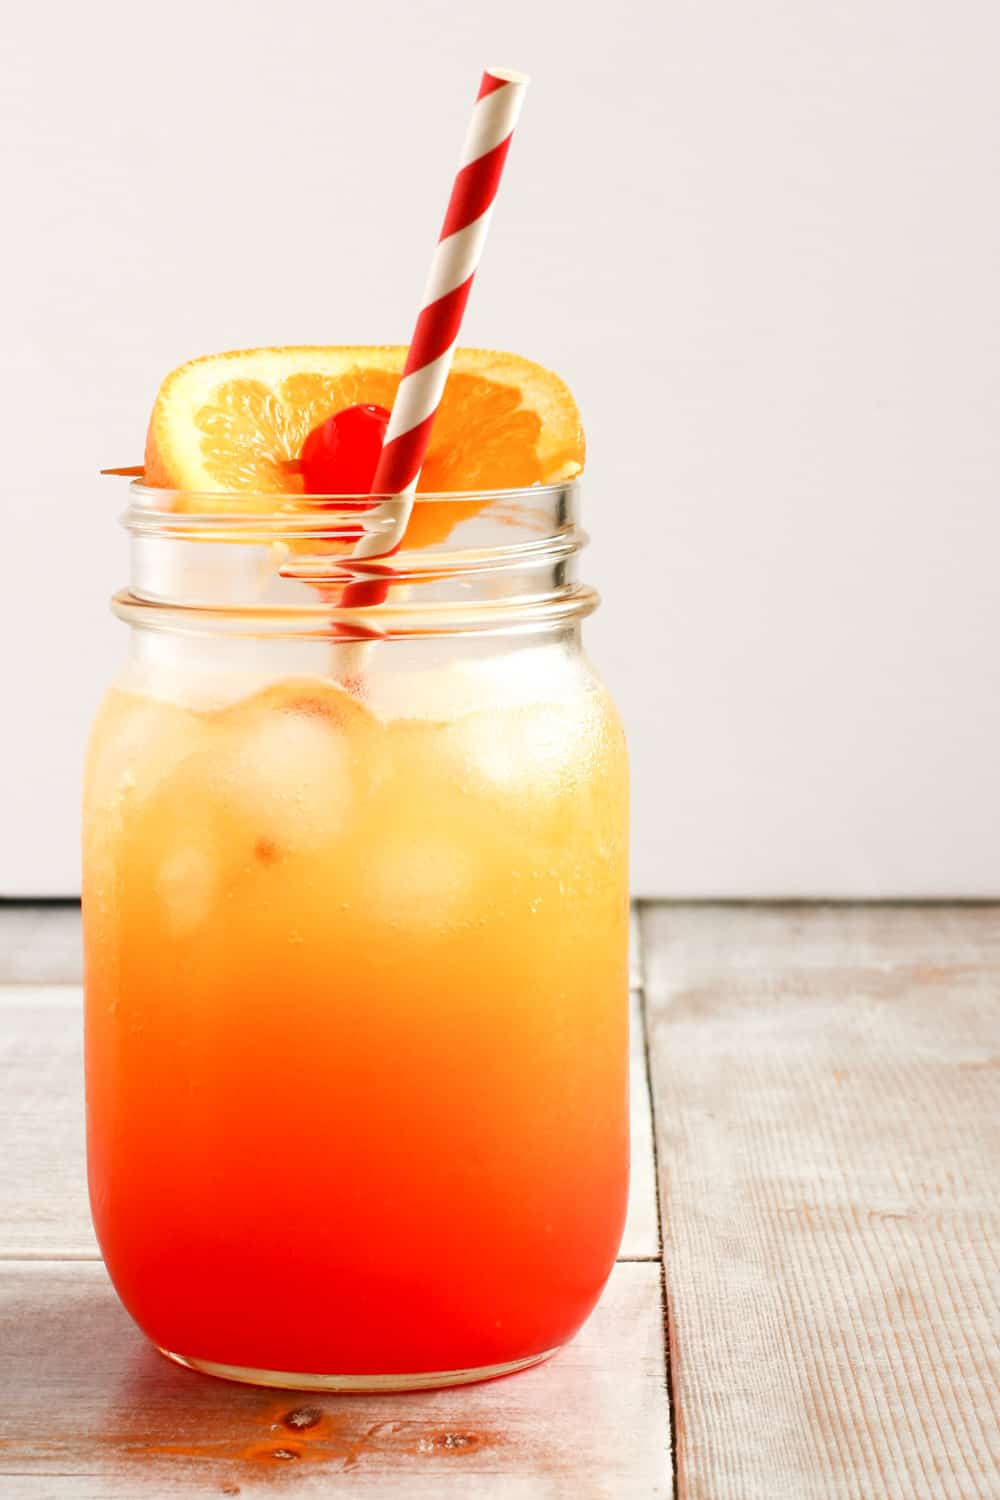 shirley temple, orange slice, cherry, red striped straw